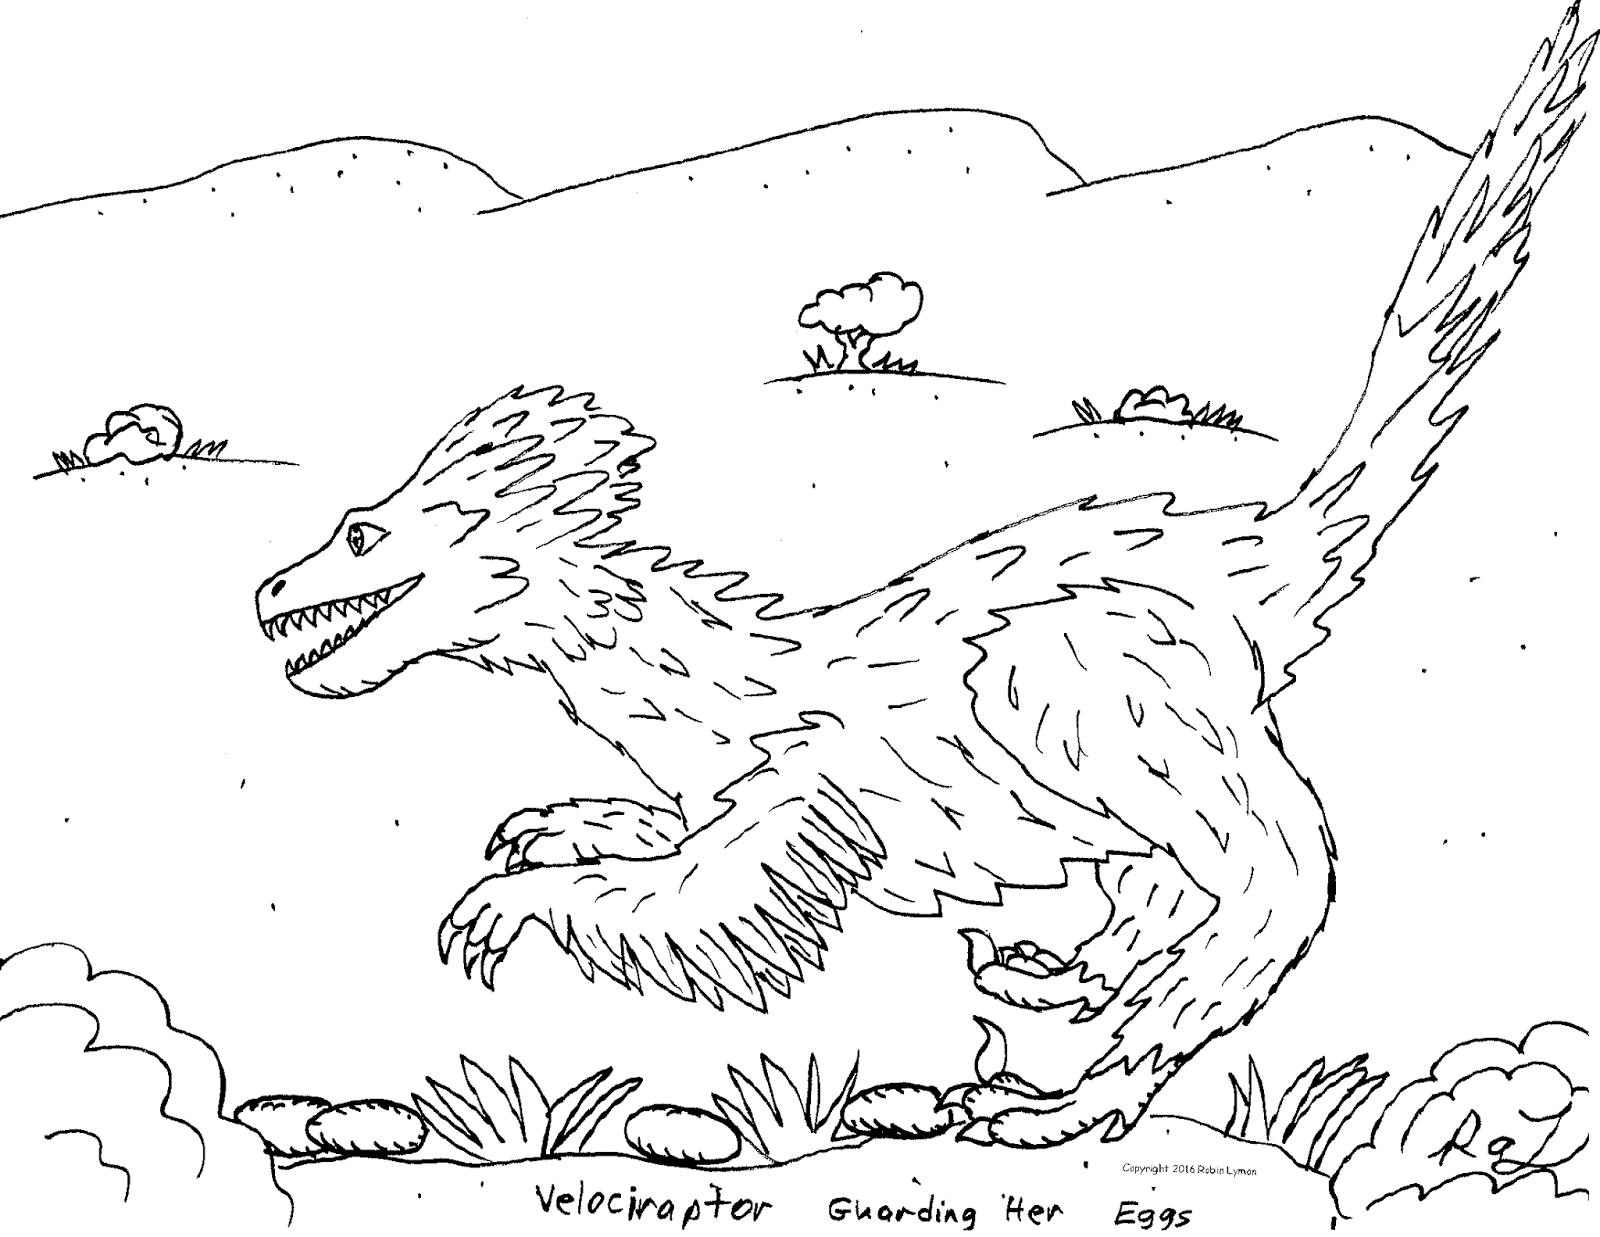 microraptor coloring pages - photo#31